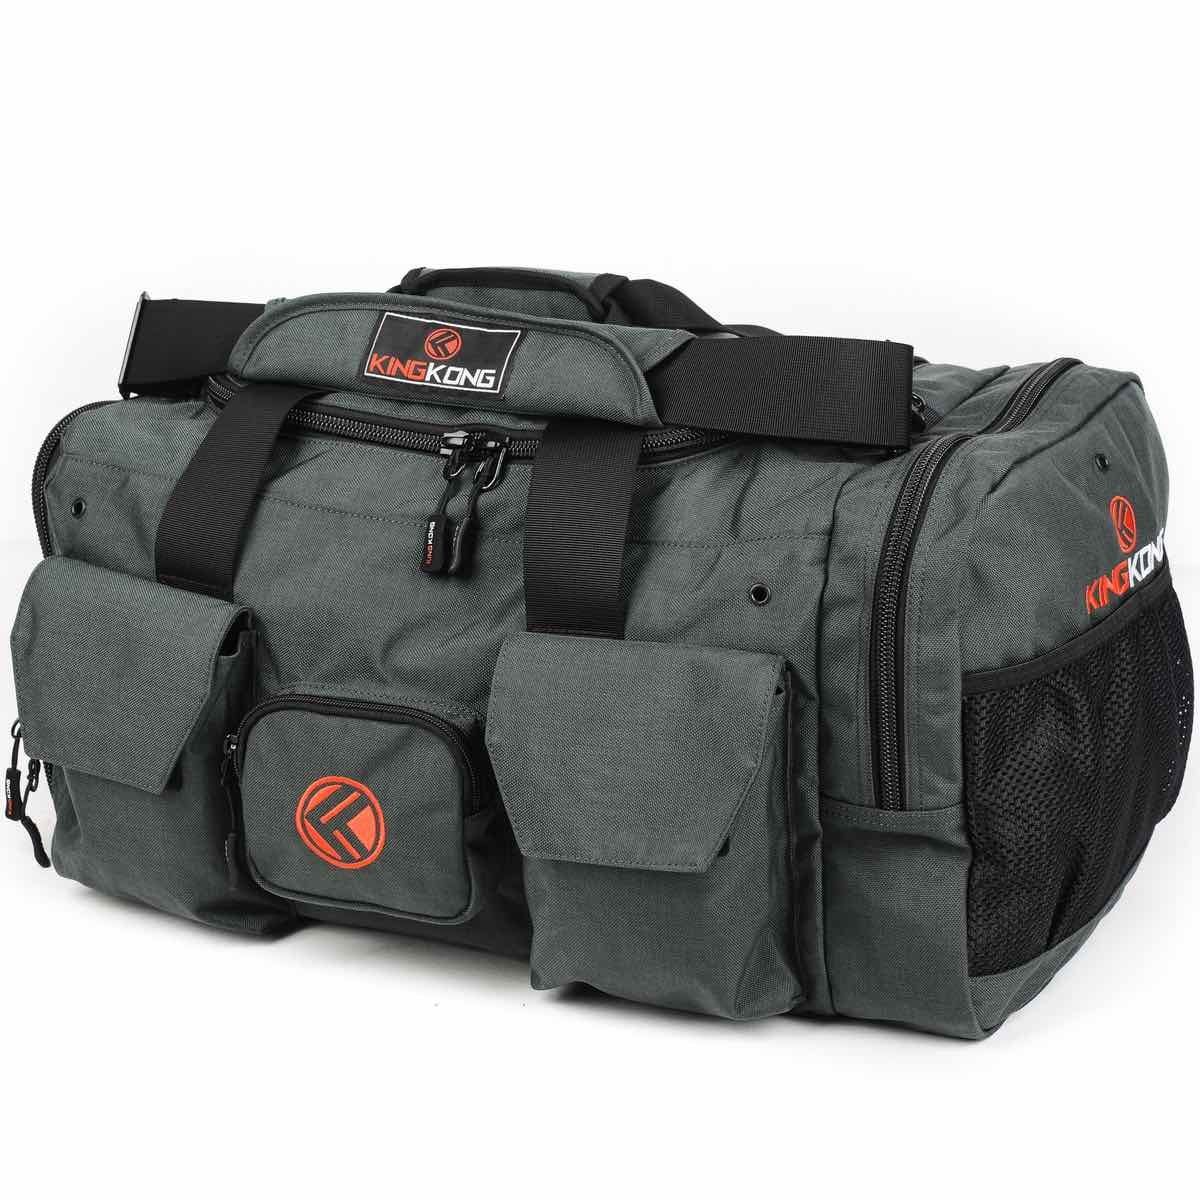 King Kong Original 3.0 – Best All-Around CrossFit Gym Bag